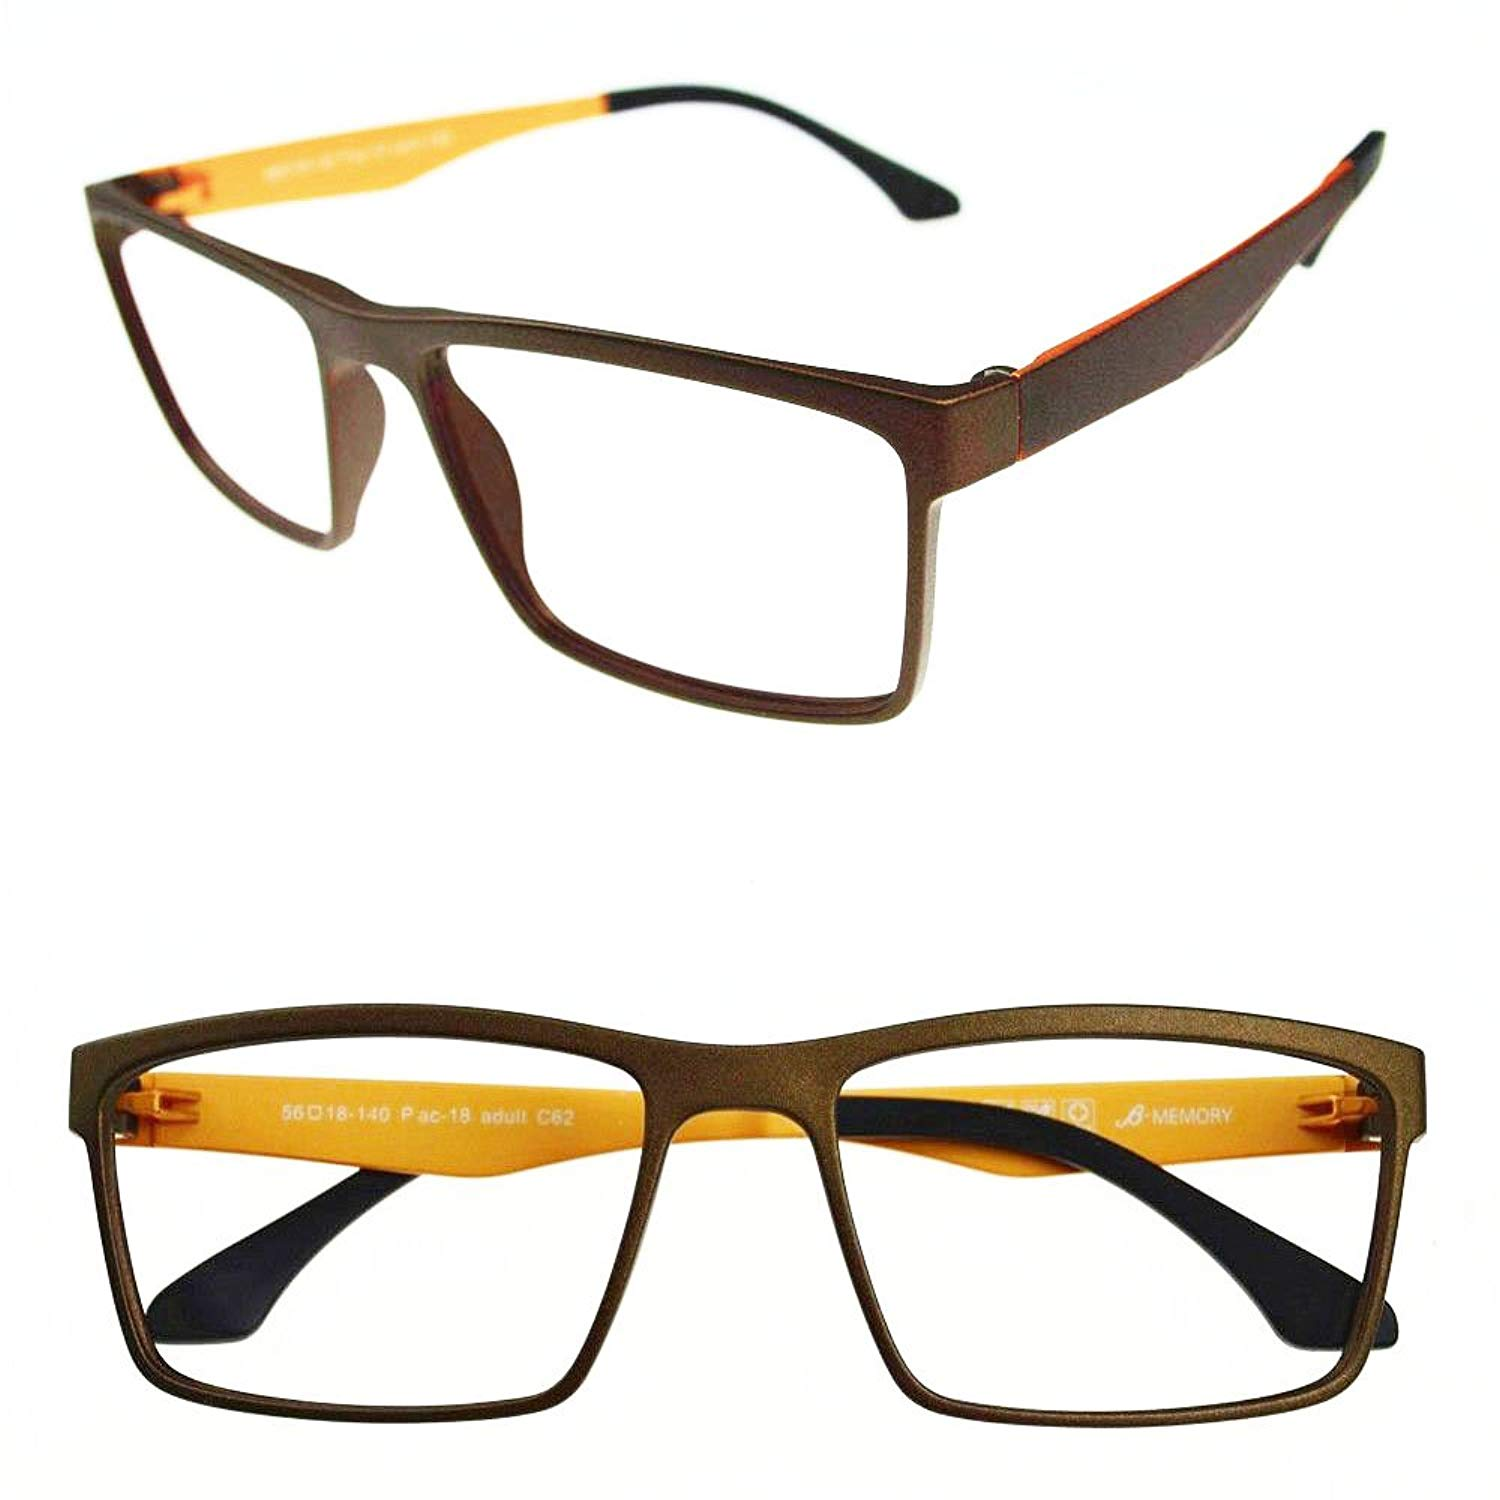 edbf73160fd Get Quotations · Agstum Mens Ultem Flexible Optical Eyeglasses Frame Myopia  Glasses Rxable